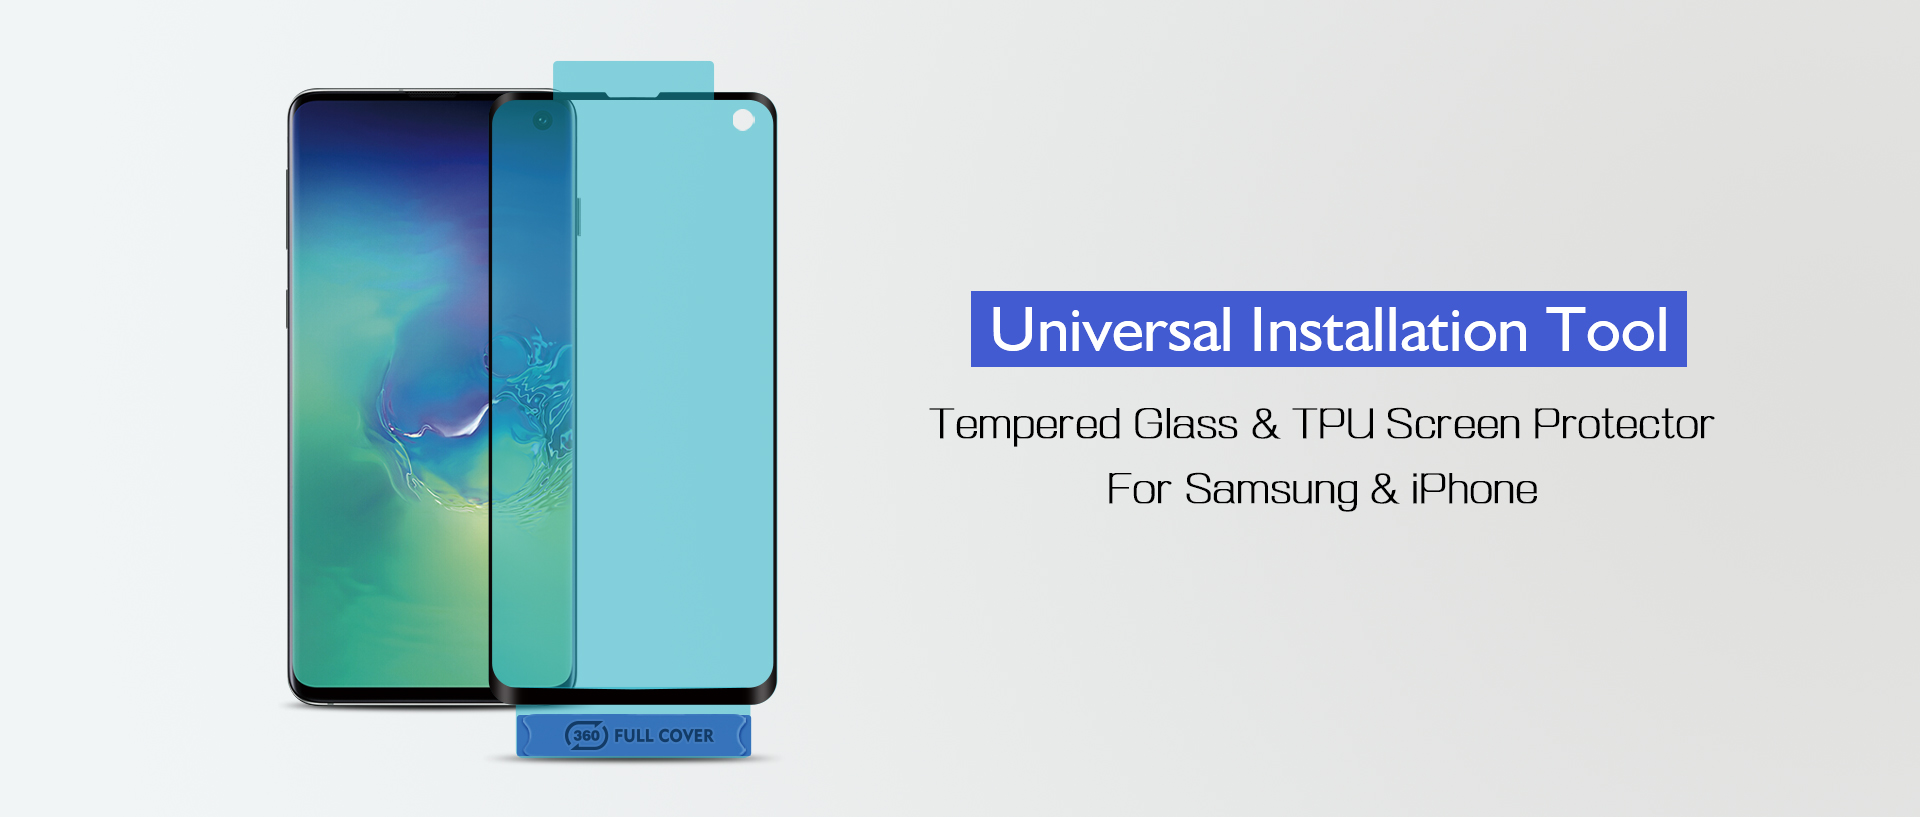 Lito Universal Tempered Glass & TPU Screen Protector Installation Tool For iPhone, Samsung